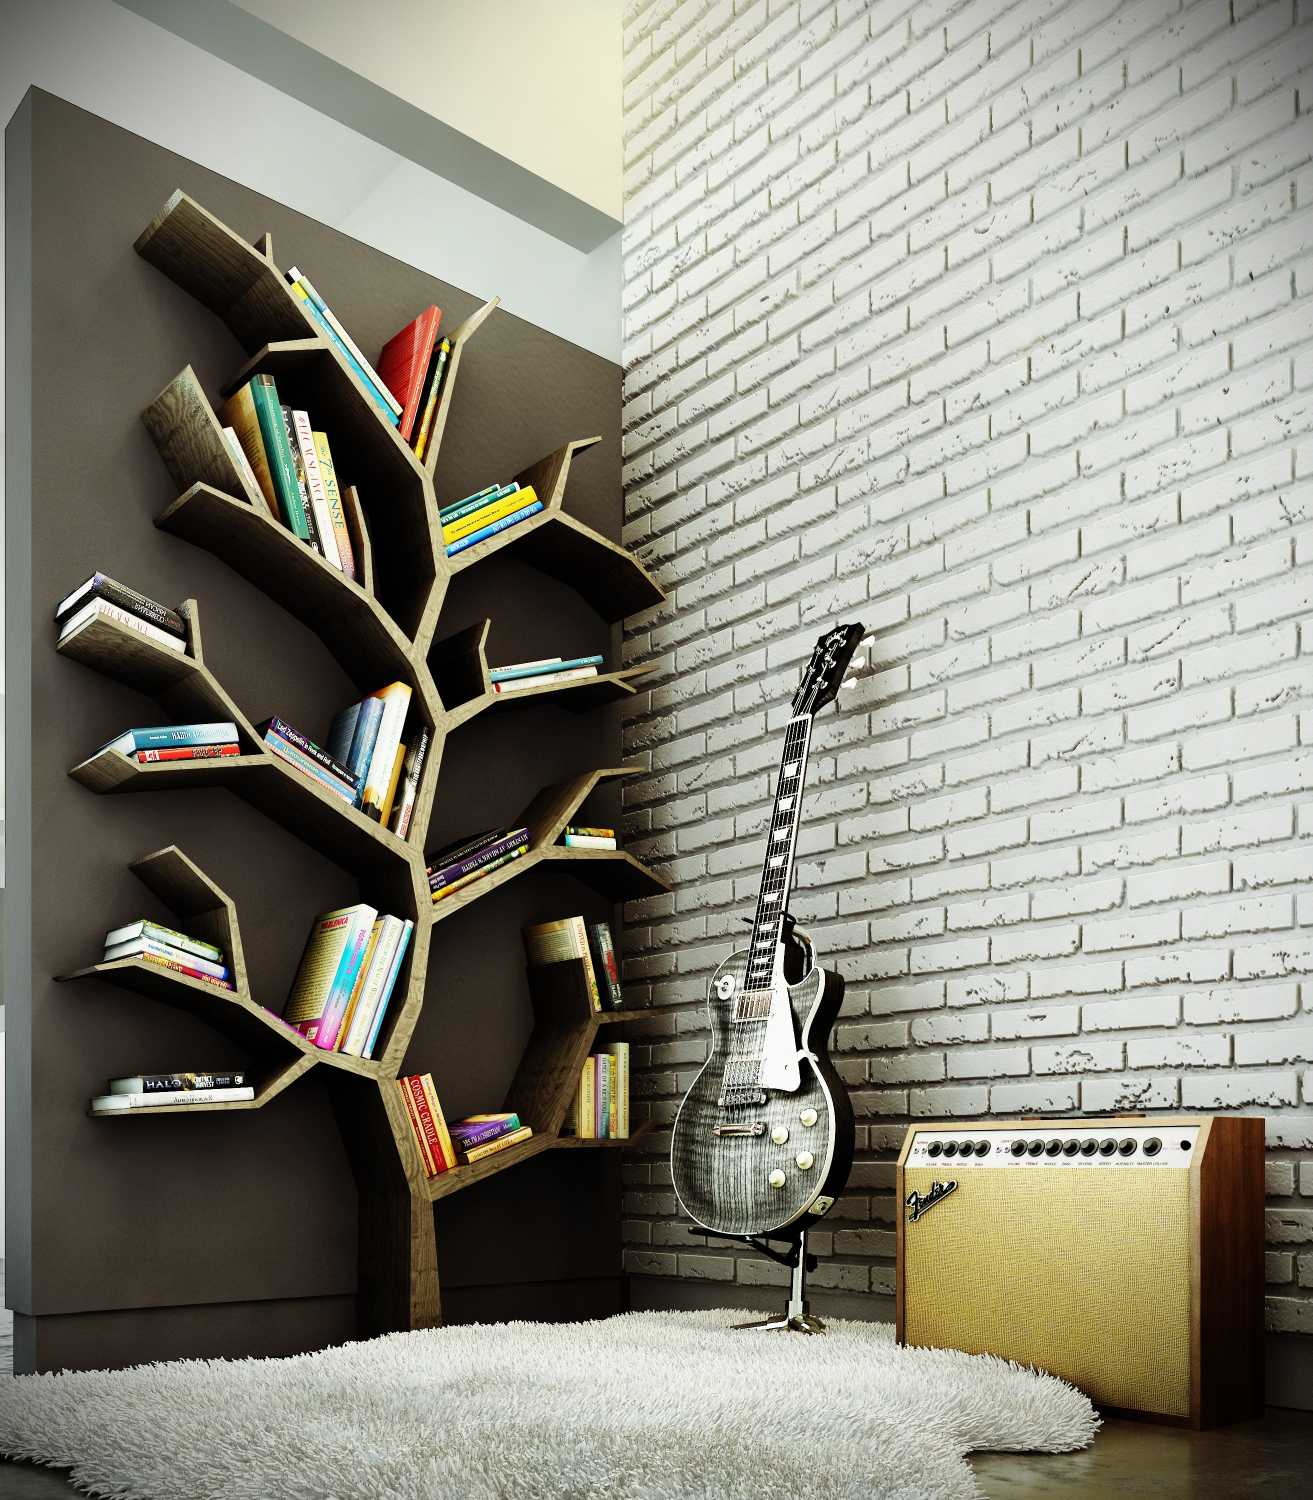 Amazing ... Unique Bookshelf Ideas. 1. Geometric Tree